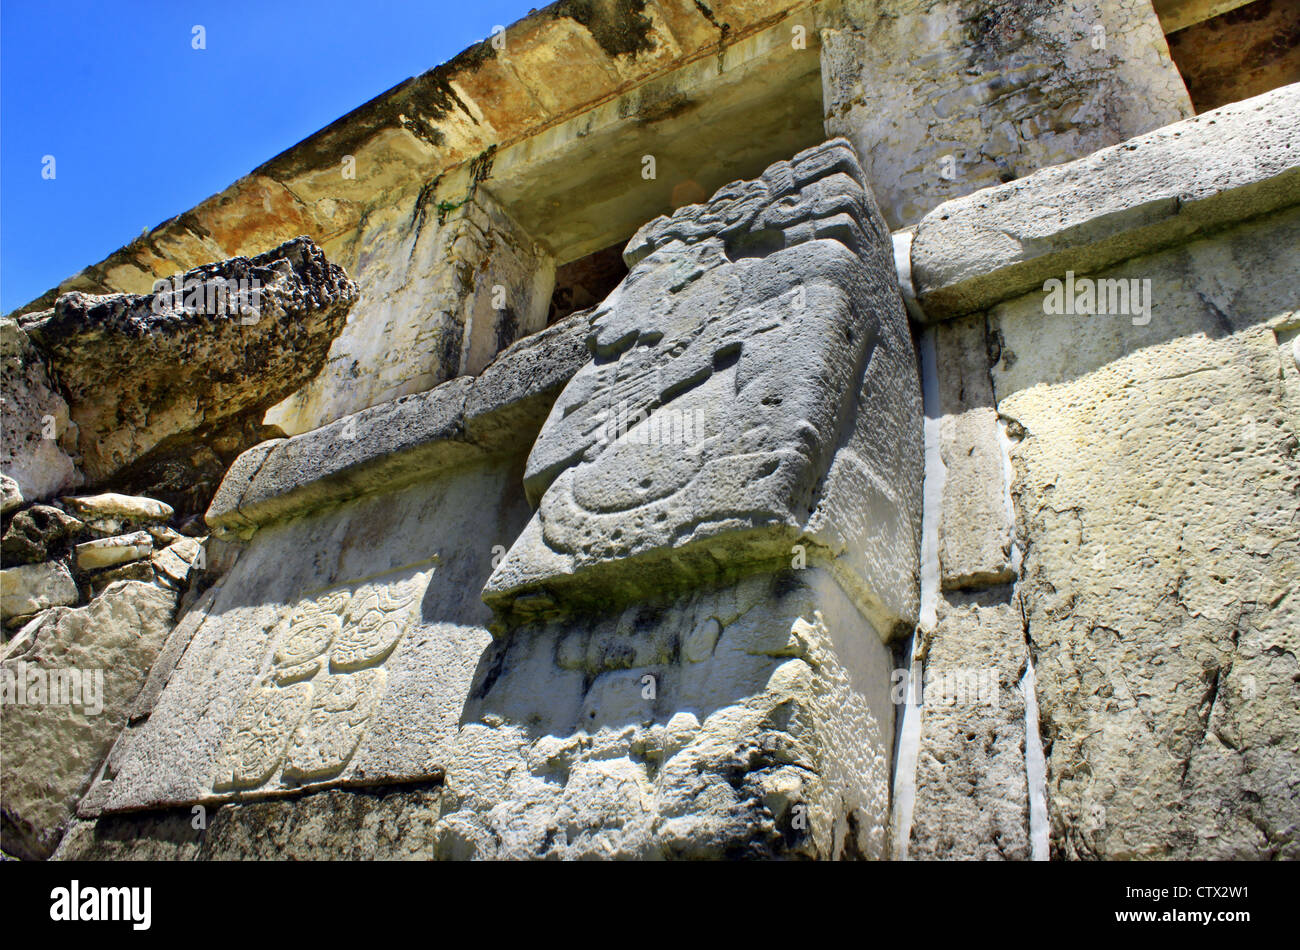 Palenque mayan monument Chiapas Mexico. Frieze of person. - Stock Image